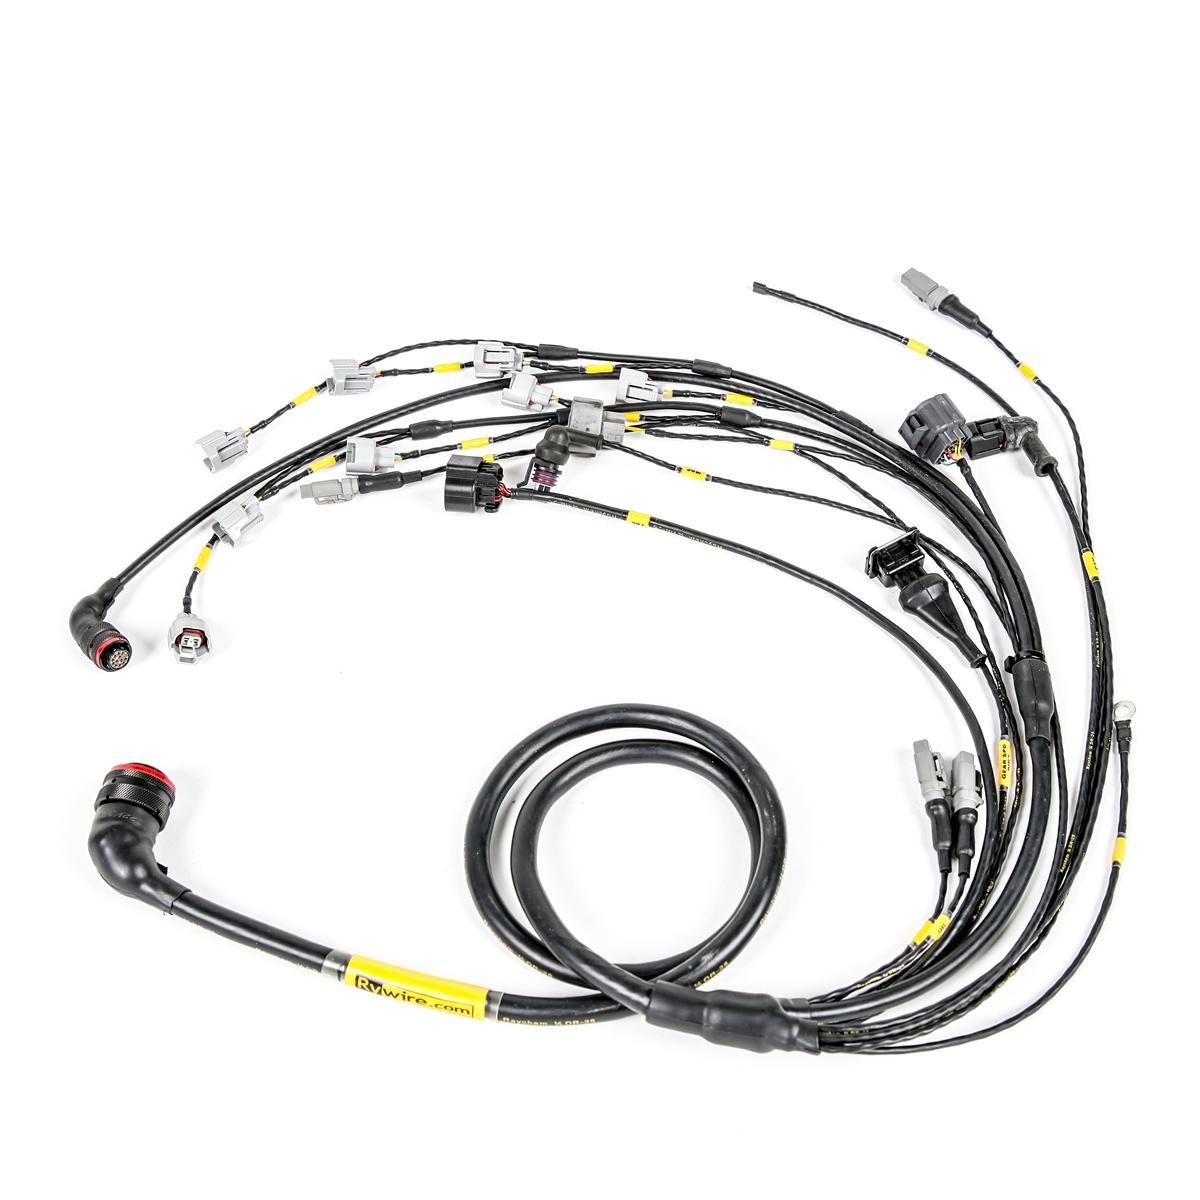 Rywire.com - Mil-spec Custom engine harness